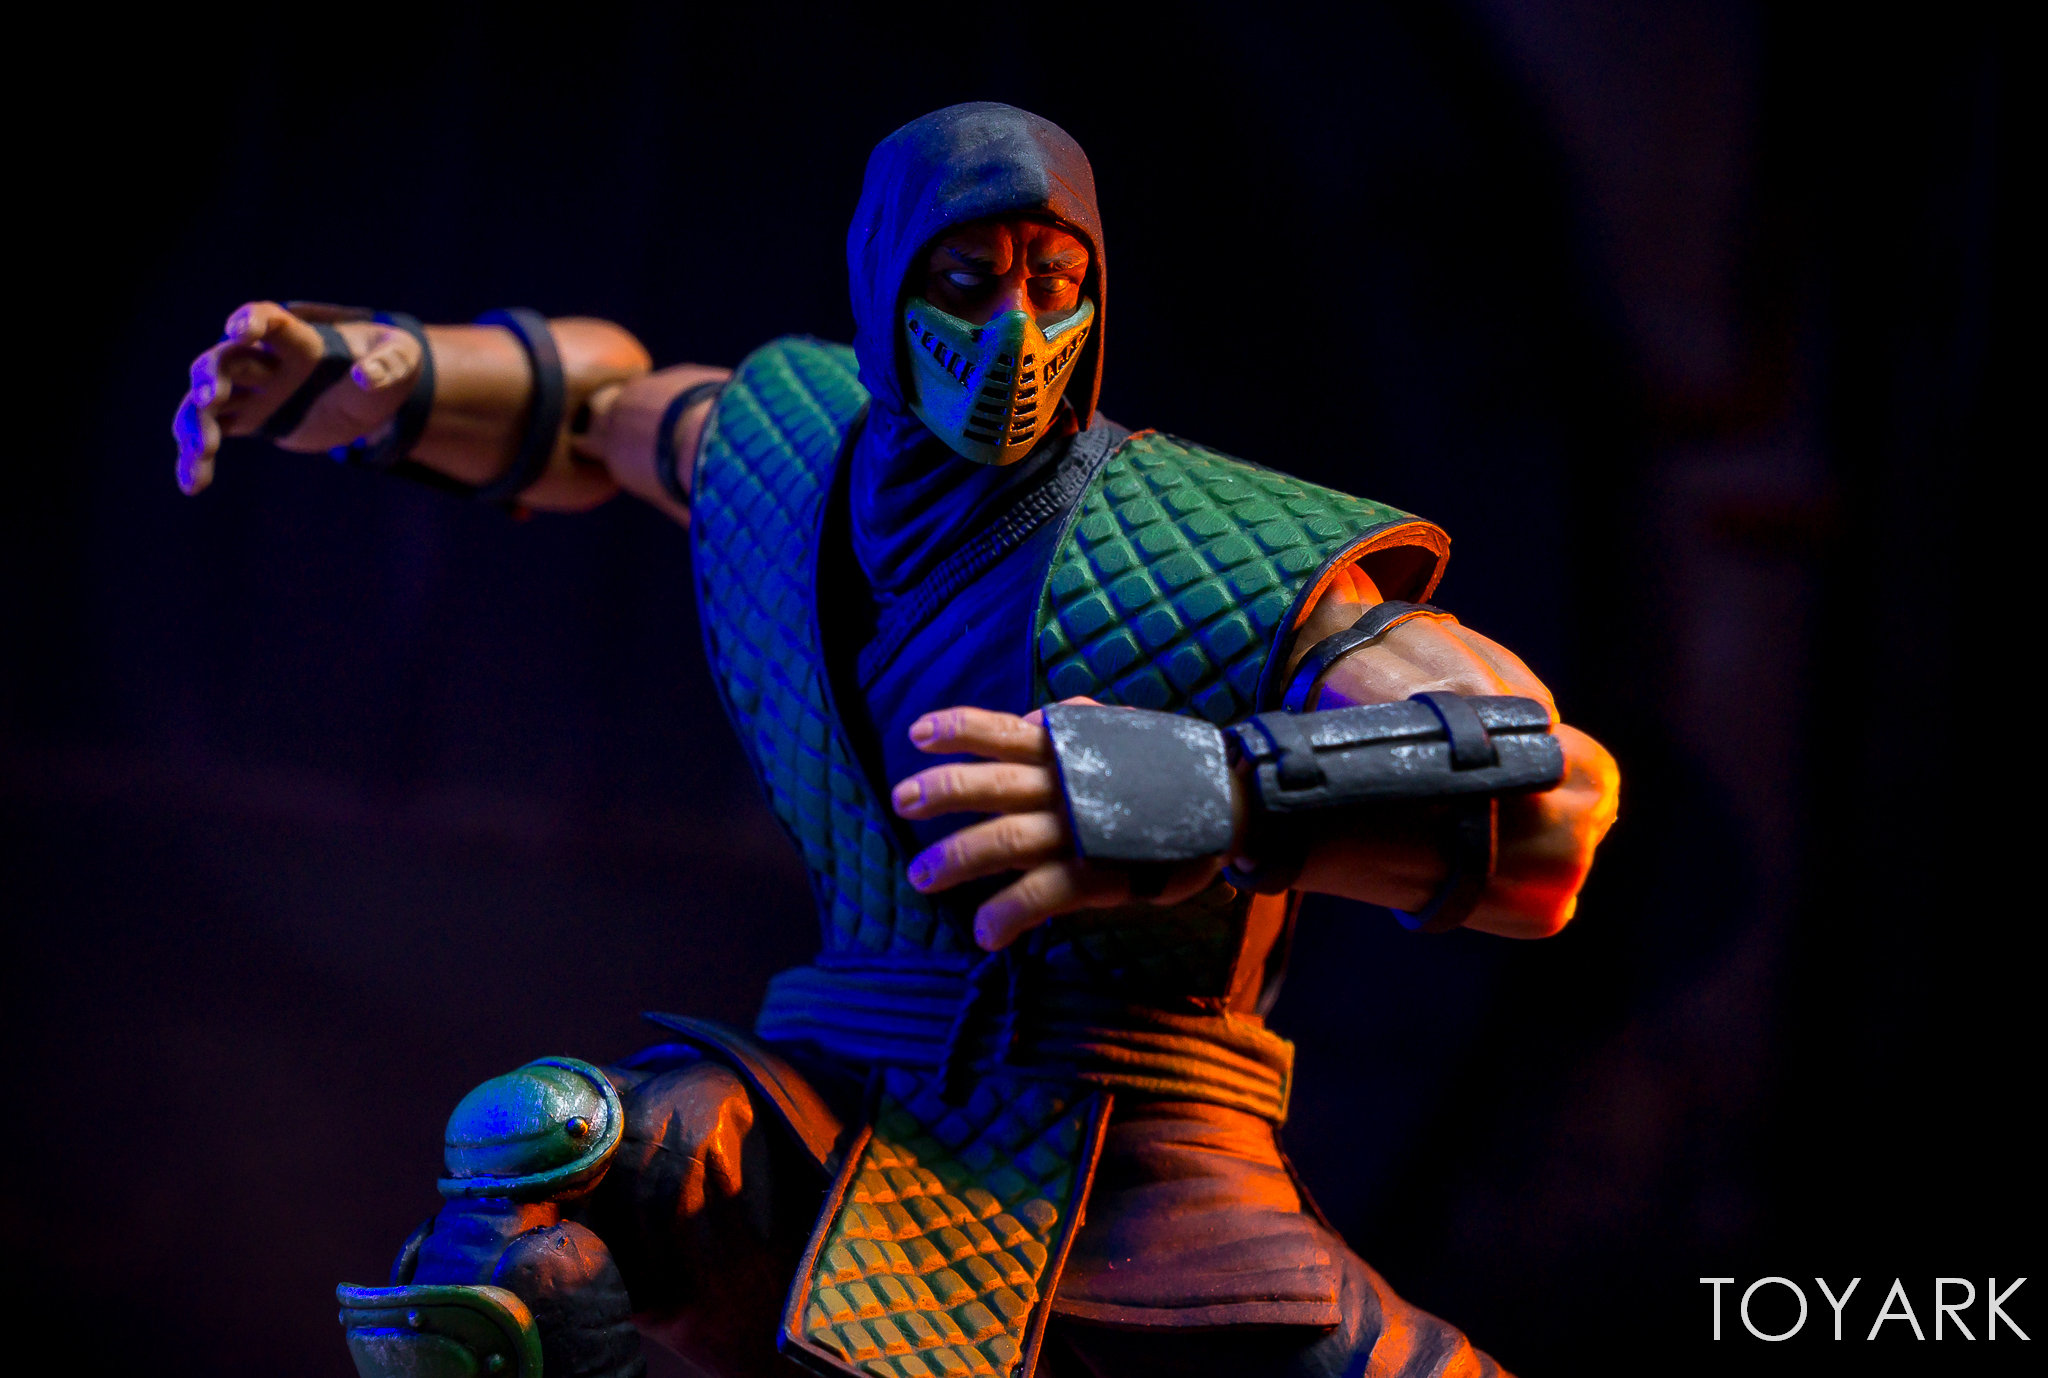 http://news.toyark.com/wp-content/uploads/sites/4/2018/02/Storm-Mortal-Kombat-Reptile-020.jpg